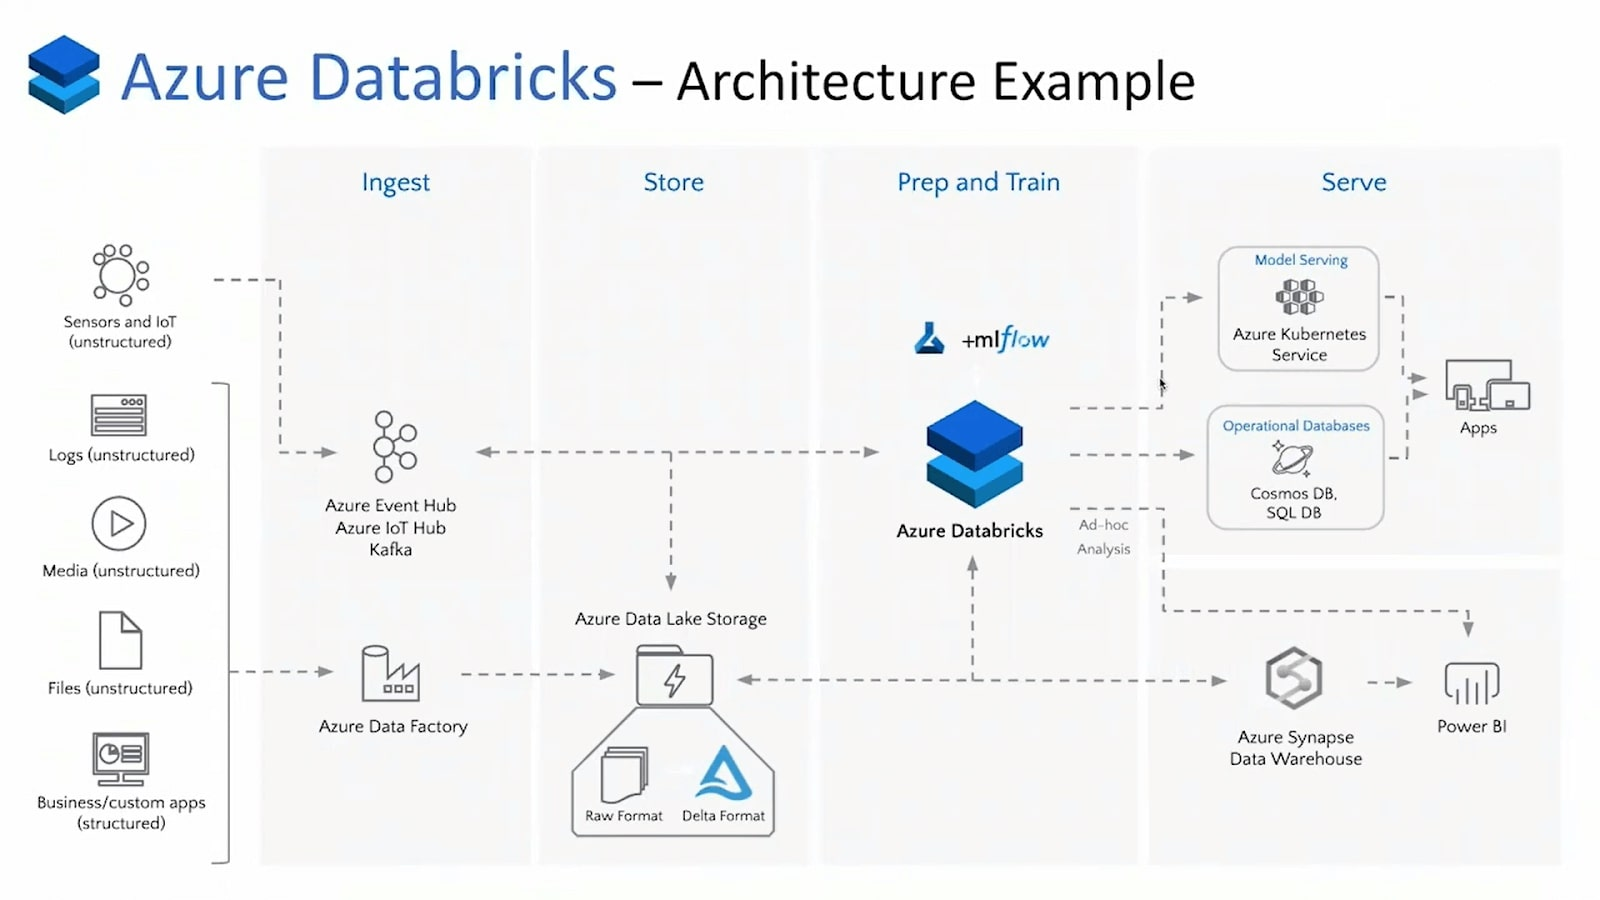 architecture example Azure